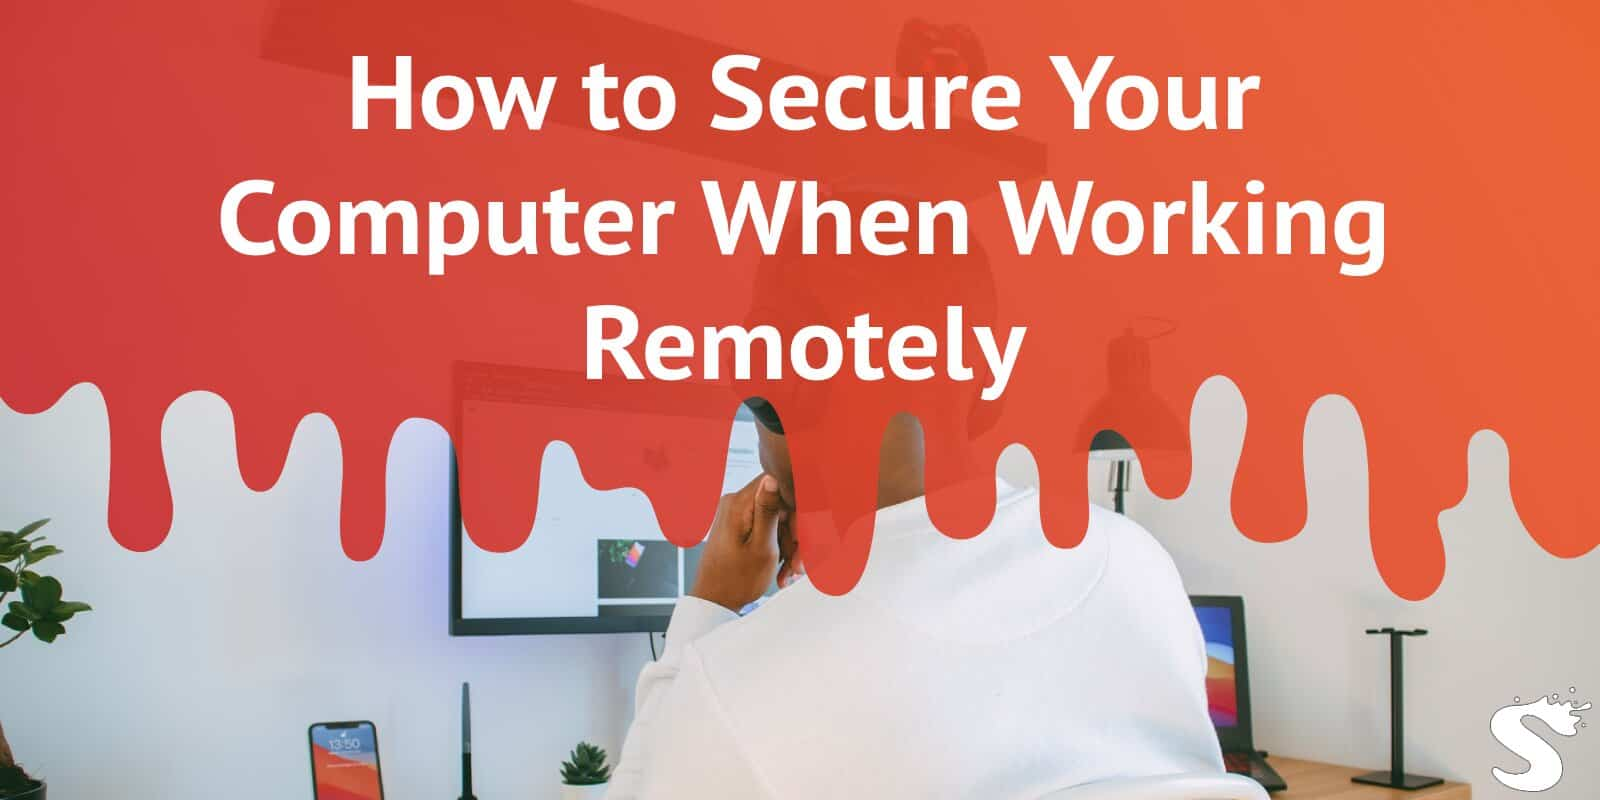 How to secure your computer when working remotely